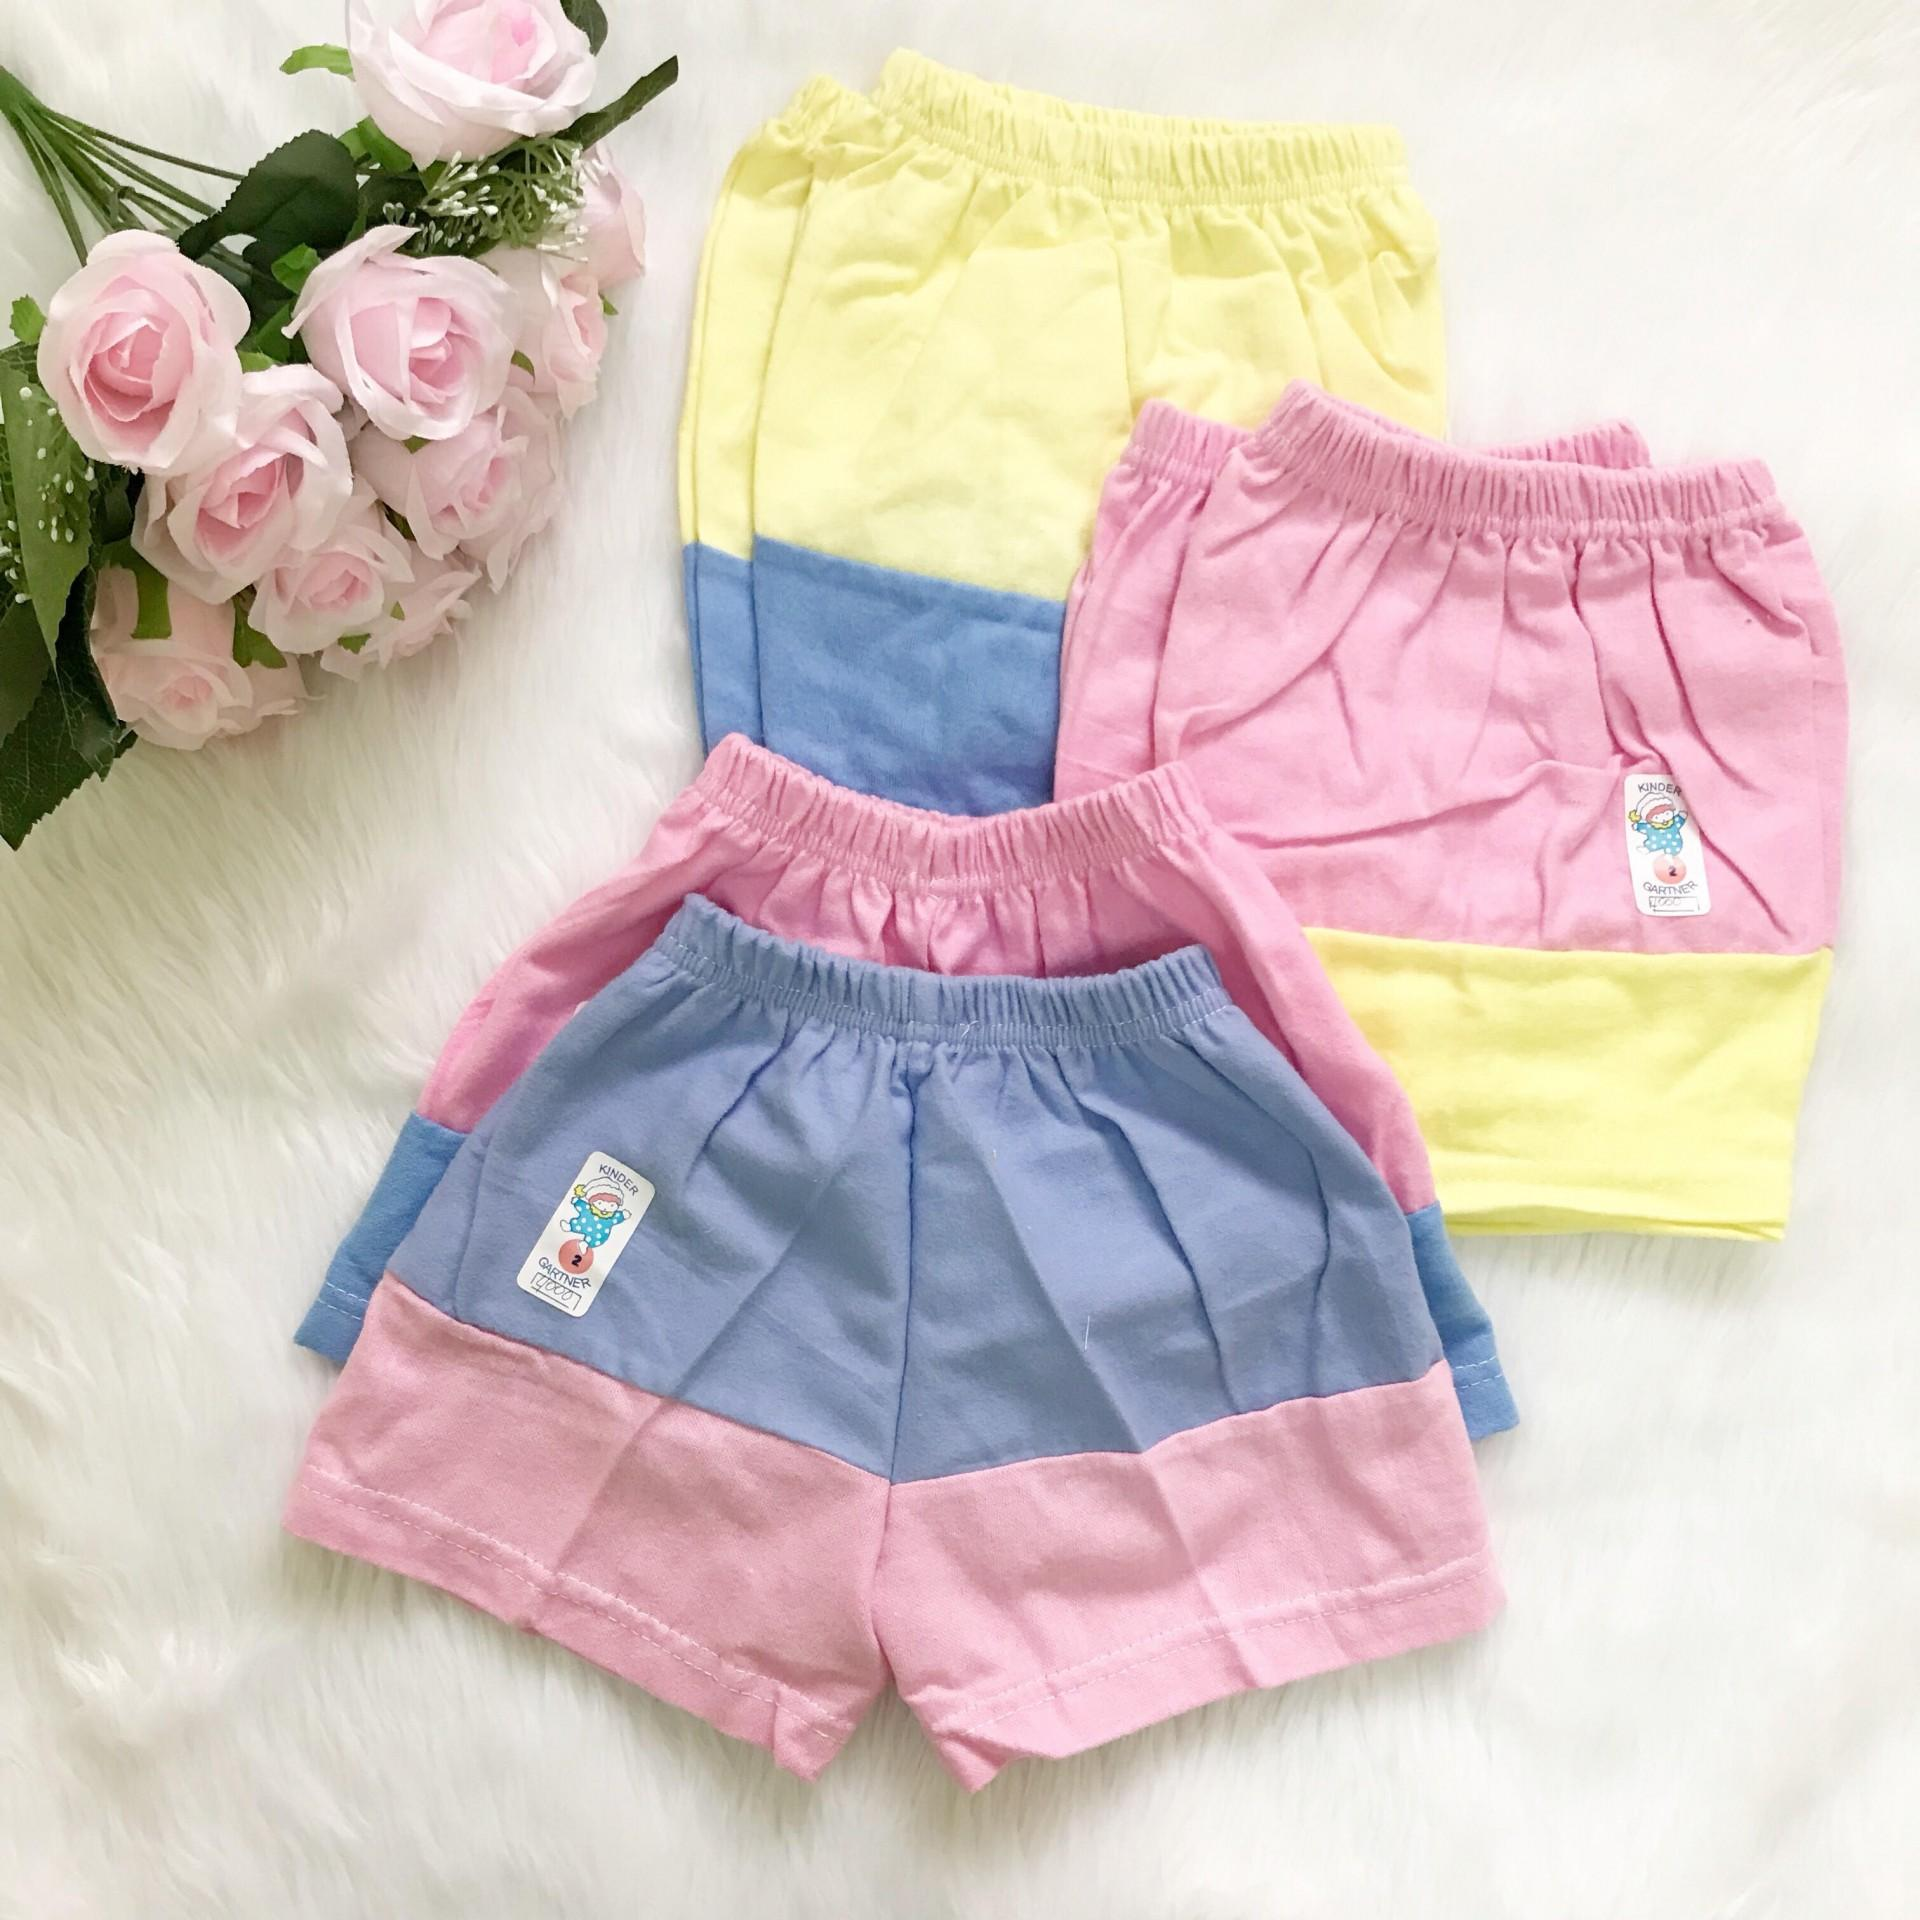 Zohto Big Promotion:Outfits Set Baby Girl,Summer Spring Infant Floral Ruffle T Shirt+Pants+Headband